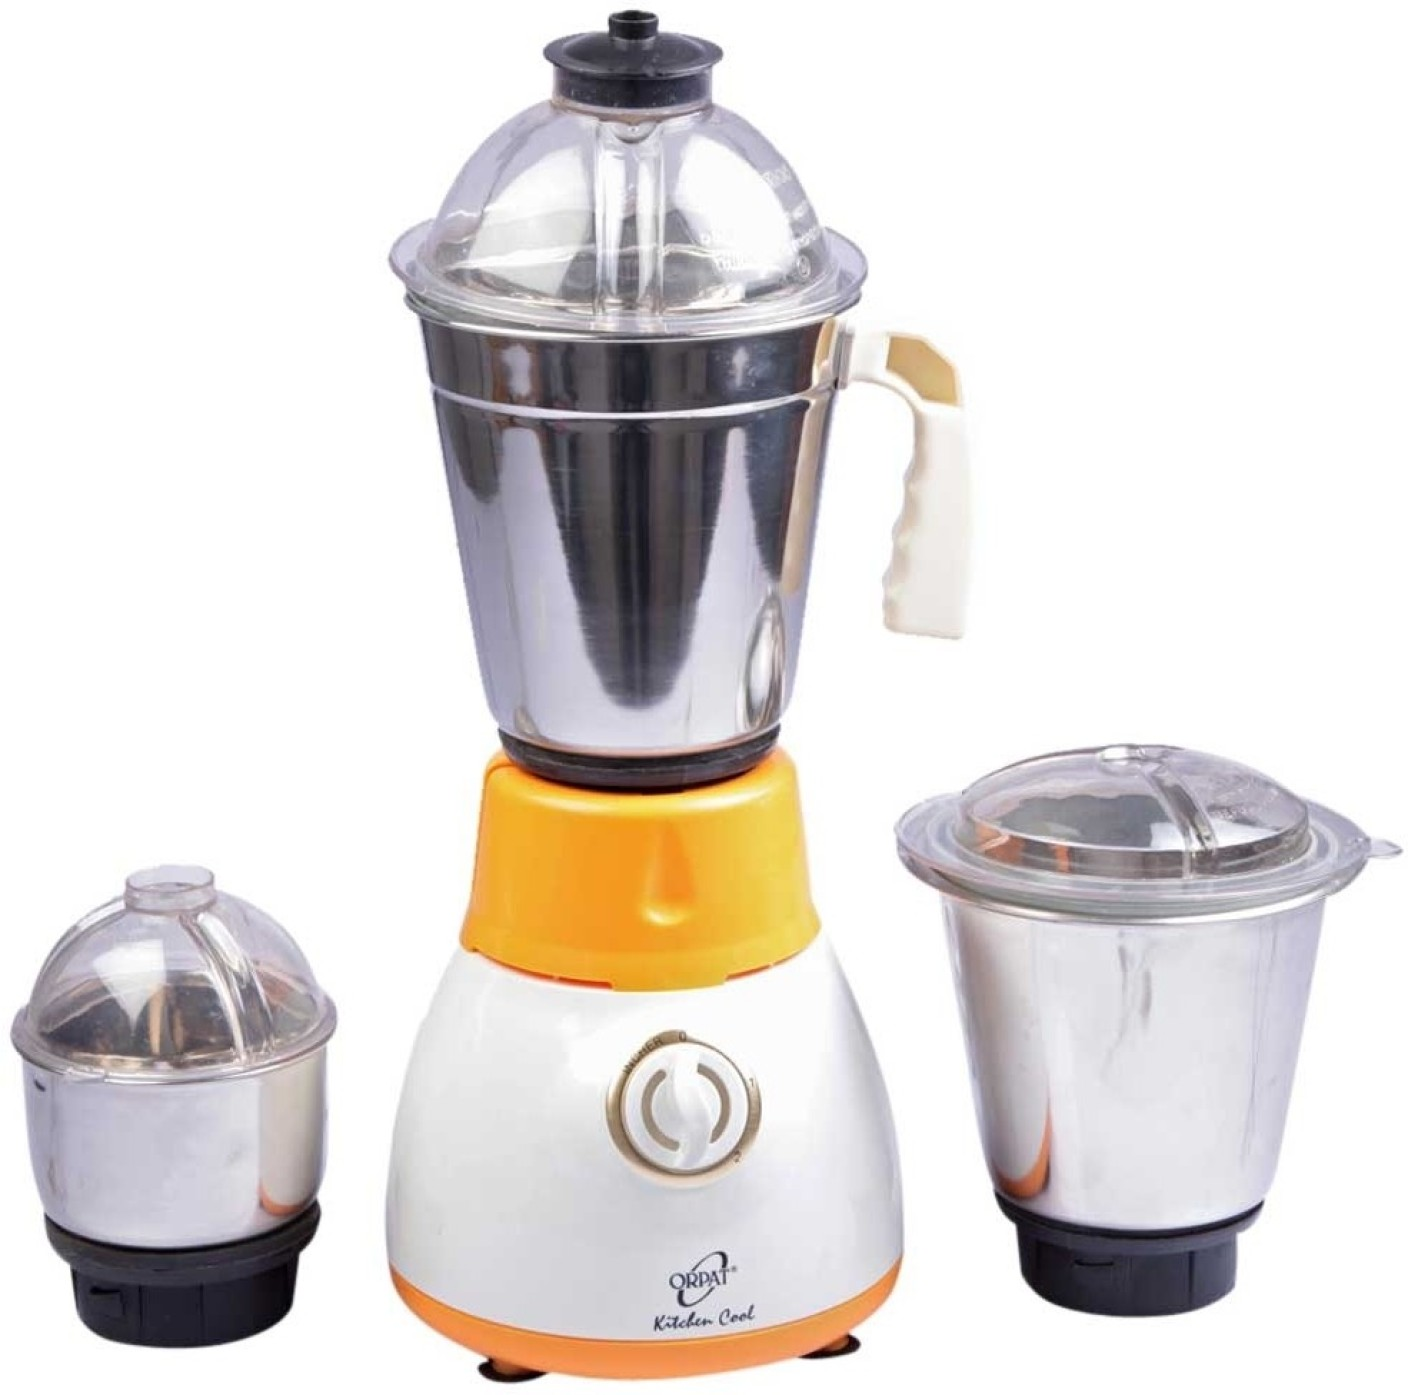 Kitchen Star Juicer Review